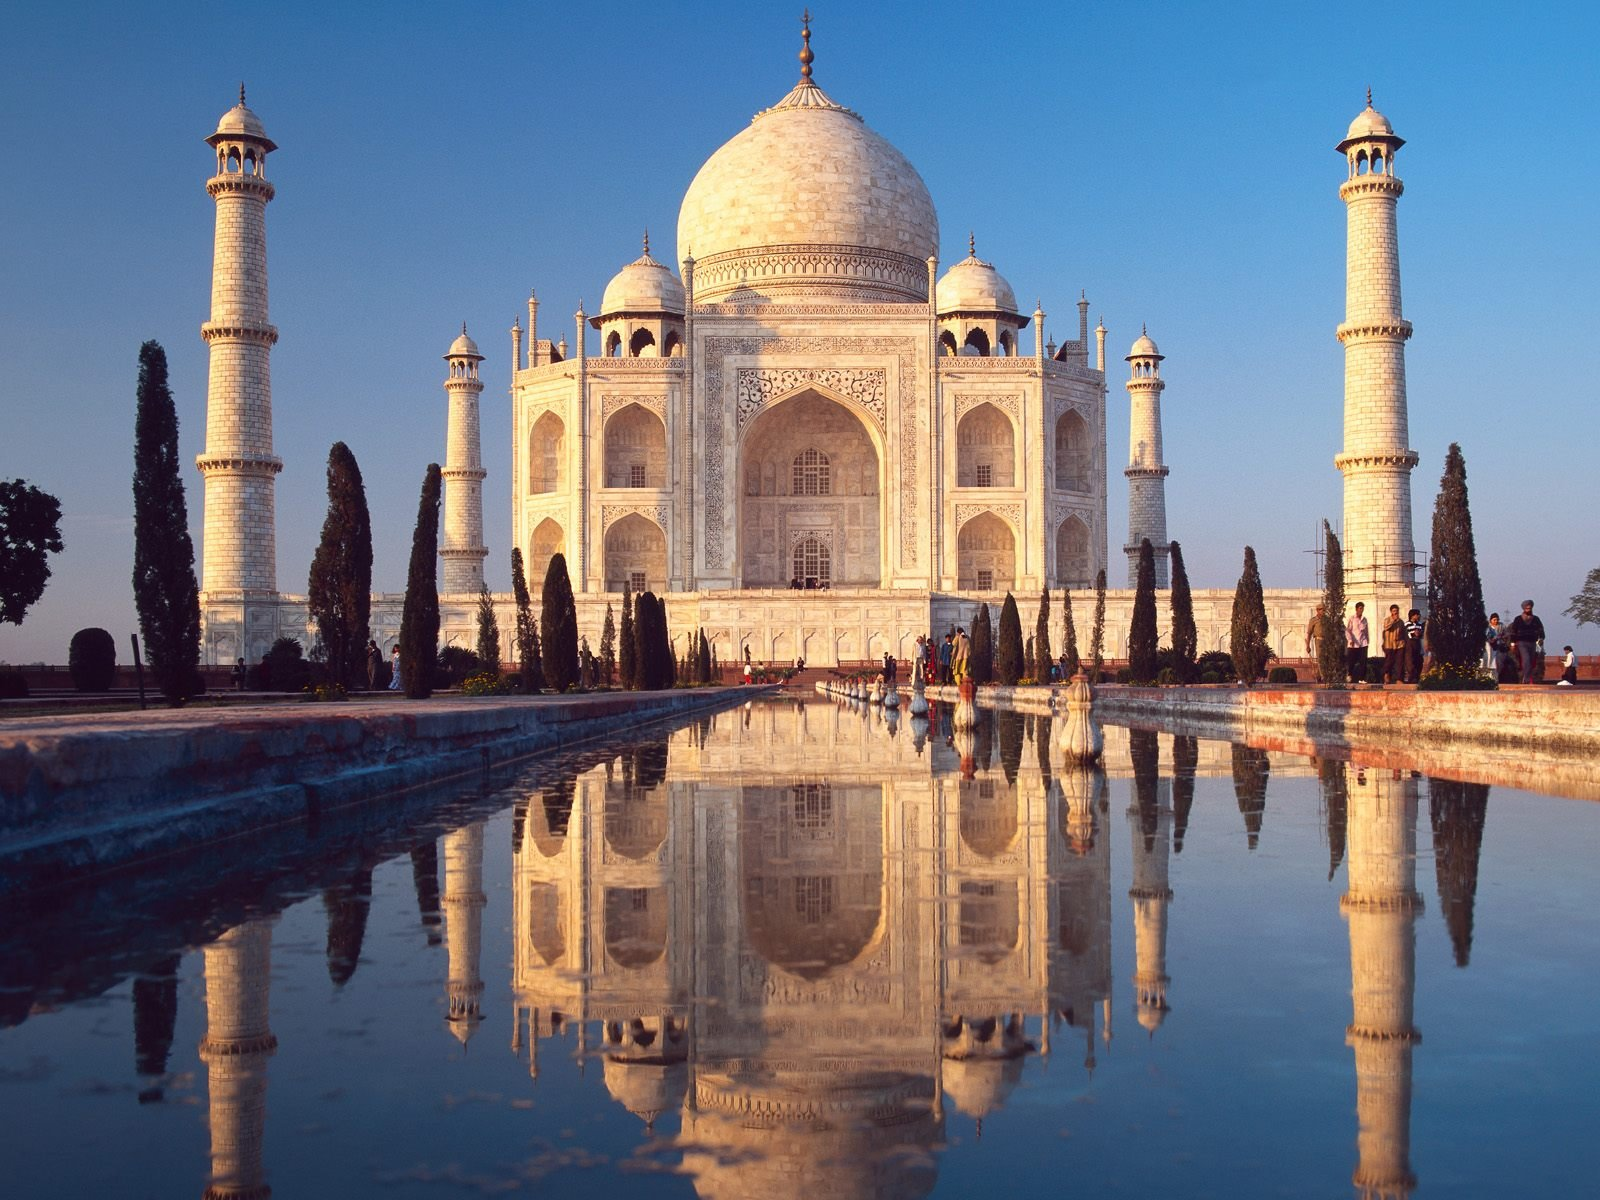 tourism in india Tourism in india a service sector growth industry india: an emerging superpower india s gdp will exceed italy s in 2020, france s in 2020 germany s in 2025 – a.